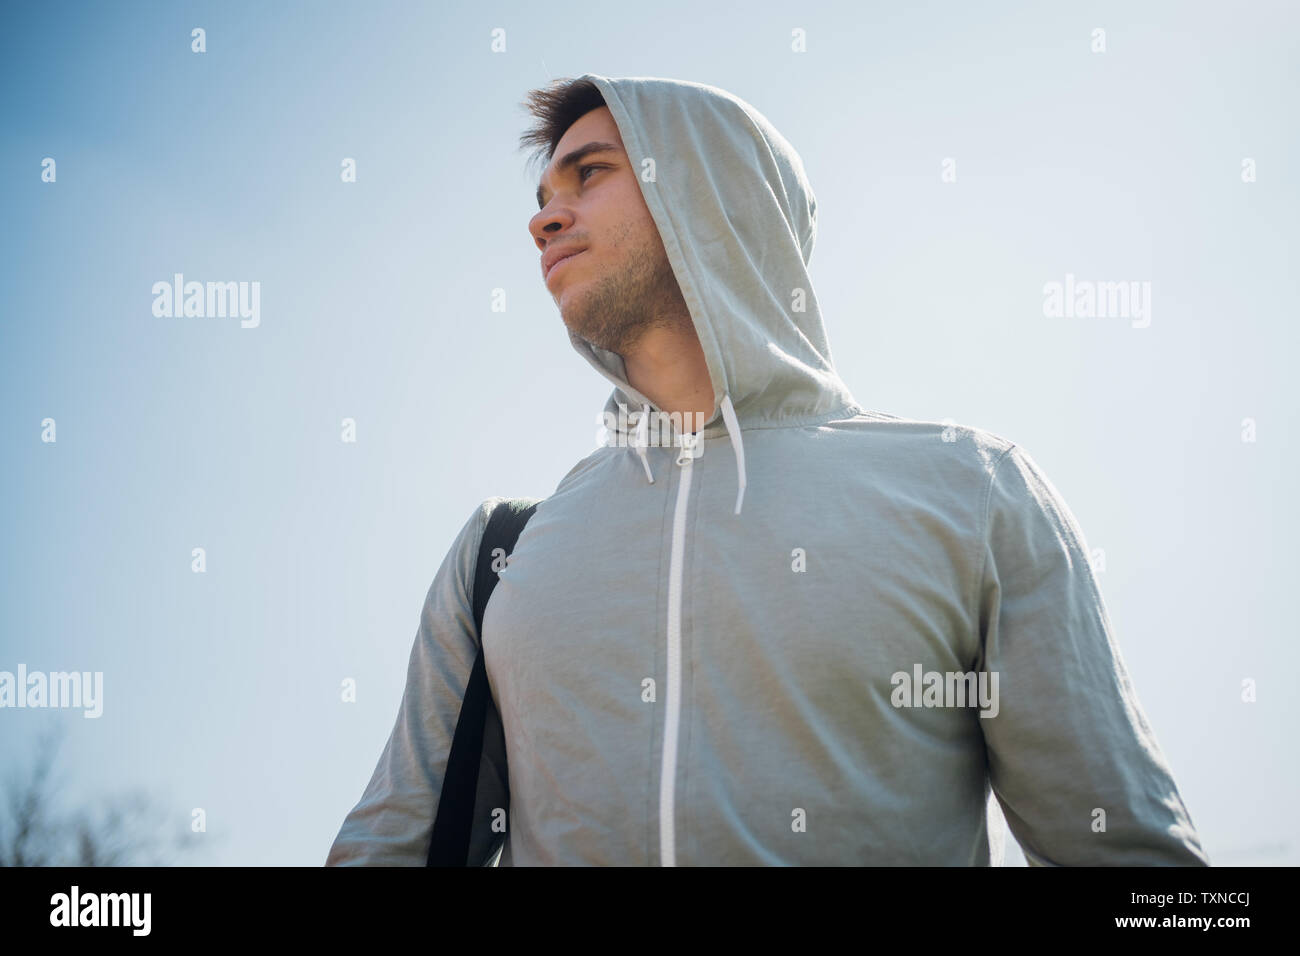 Calisthenics in park, young man in hoody against blue sky - Stock Image